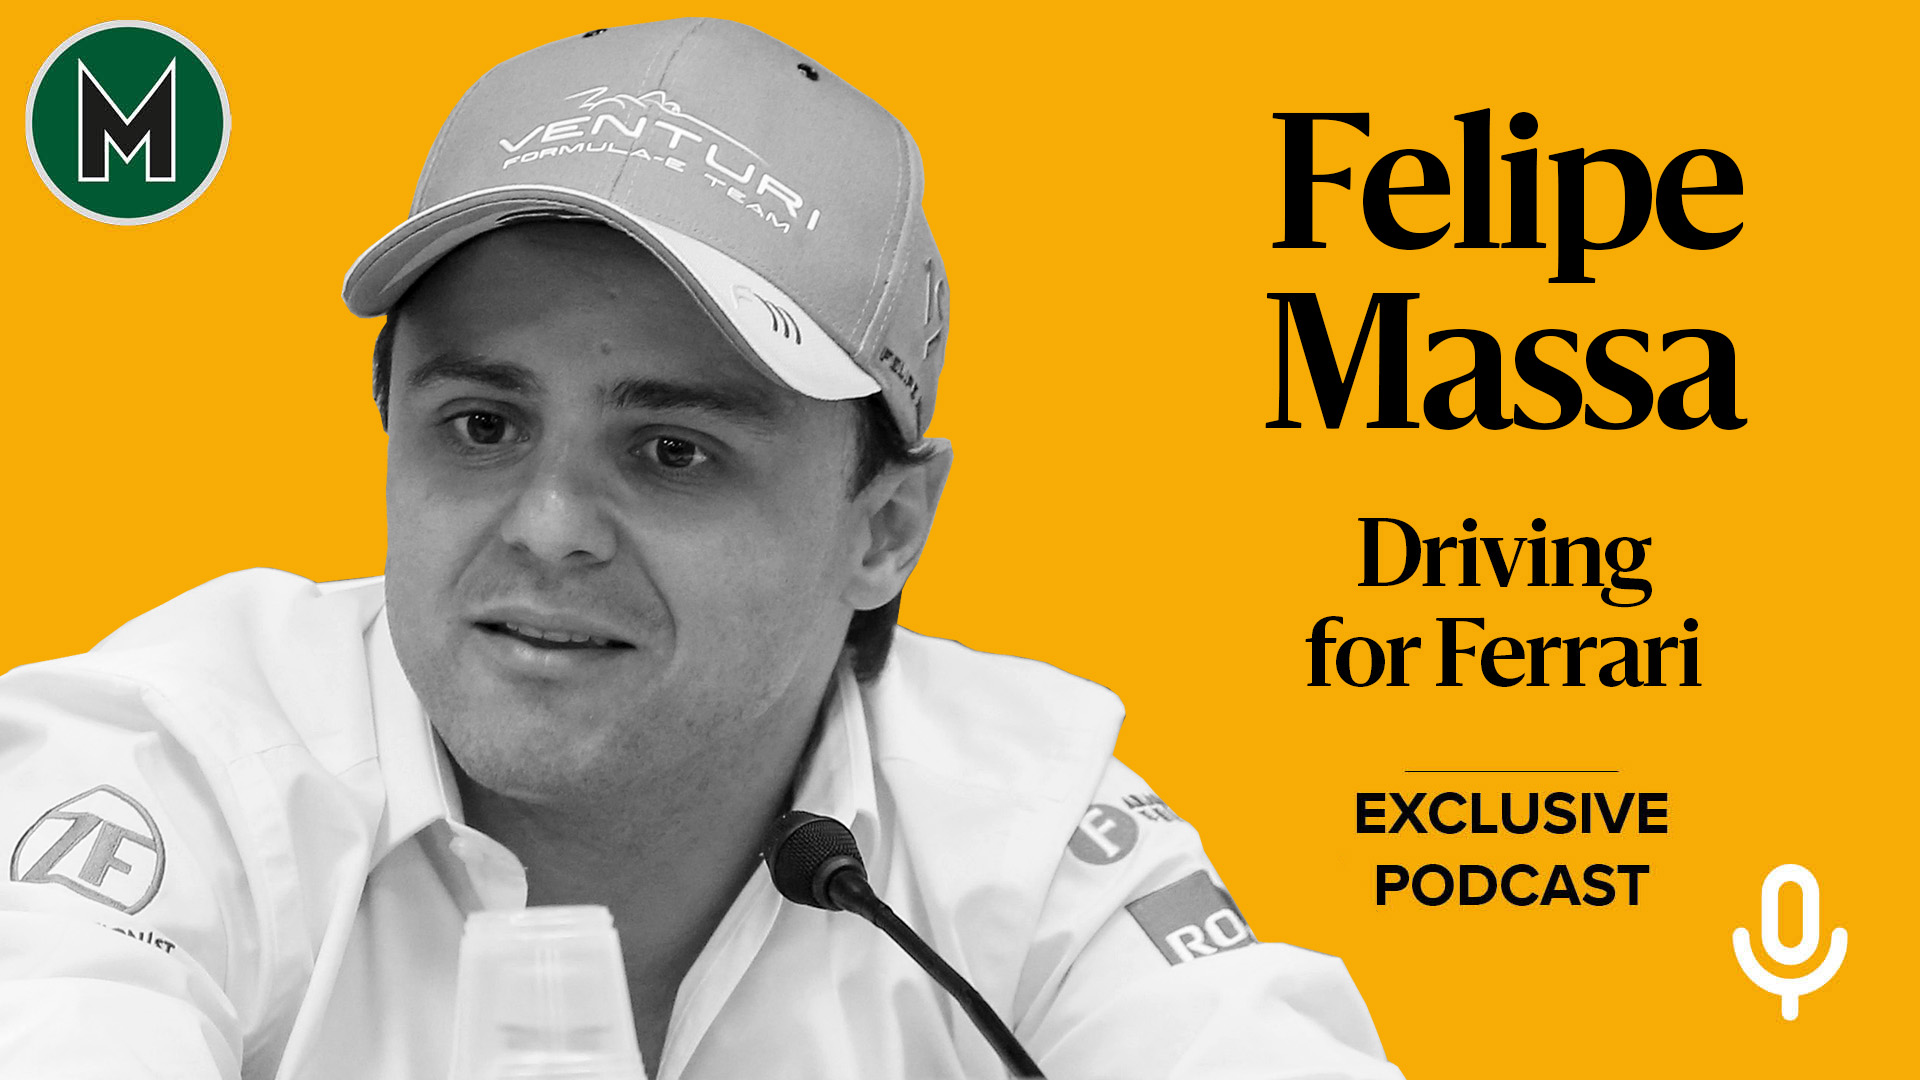 Podcast: Felipe Massa, Driving for Ferrari